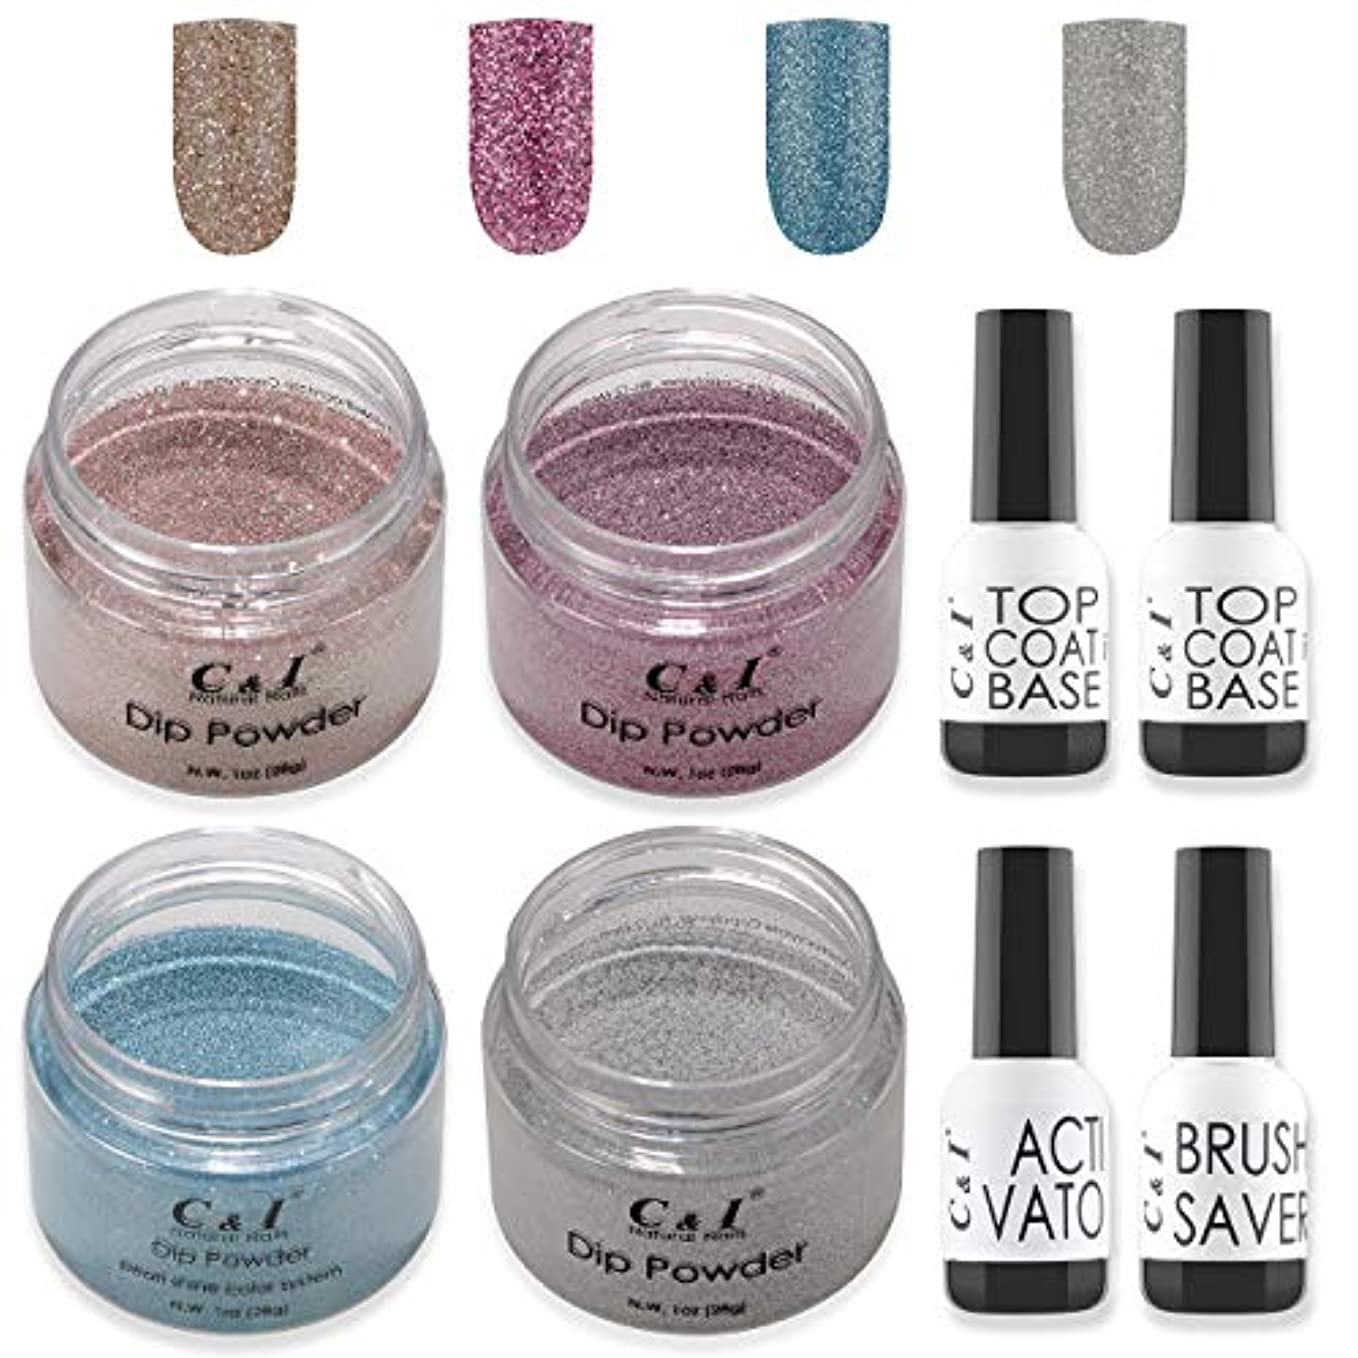 無知左外交C&I Dip Powder Nail Colors & Liquids Set, 4 colors and 4 liquids, glittering nail powder, N.W. 28 g * 4 pcs & 15 ml * 4 pcs